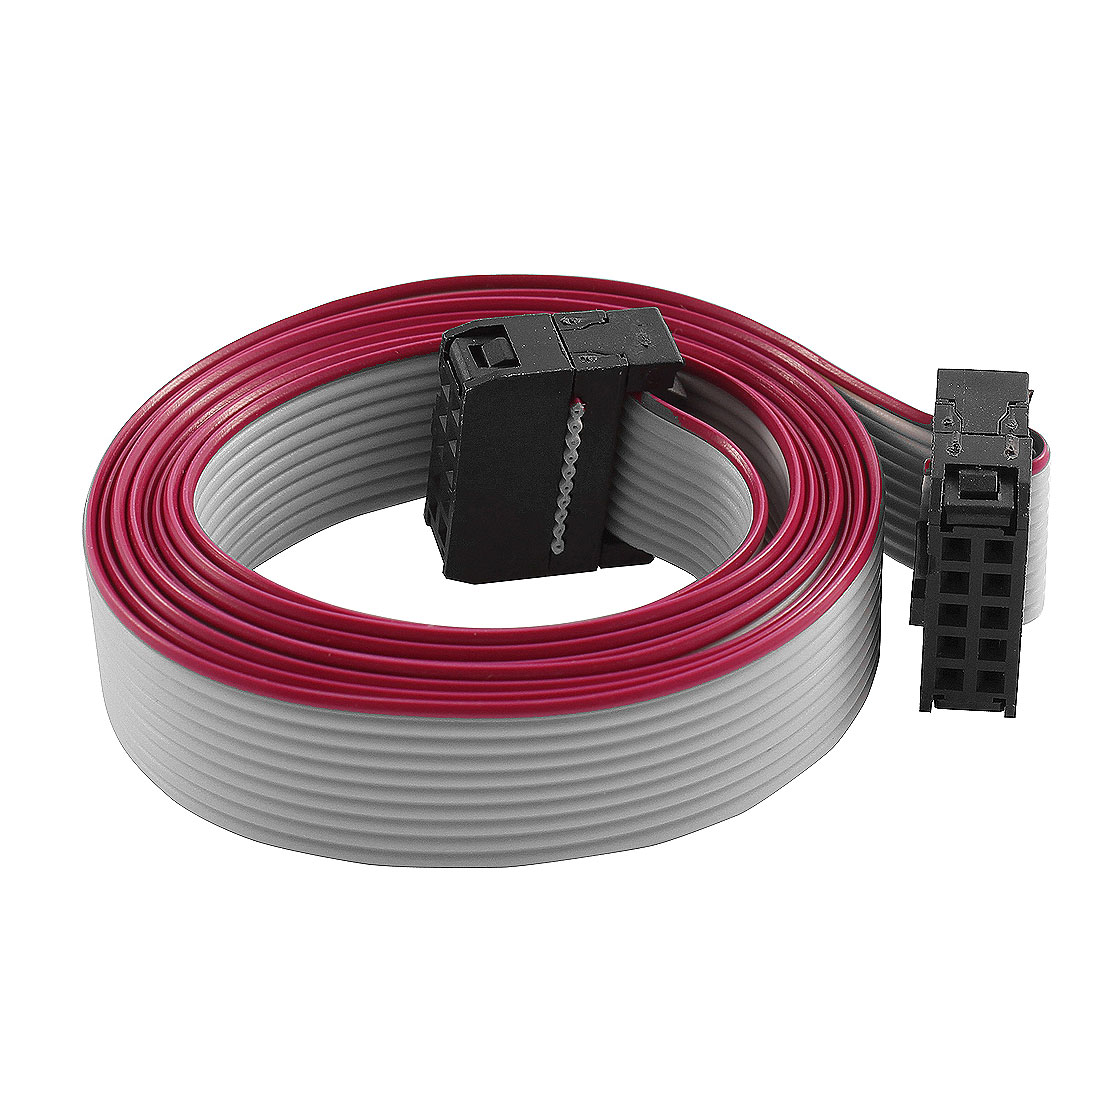 FC10P IDC 10-Pin F/F Hard Drive Data Extension Wire Flat Ribbon Cable Connector 100cm Long for Motherboard